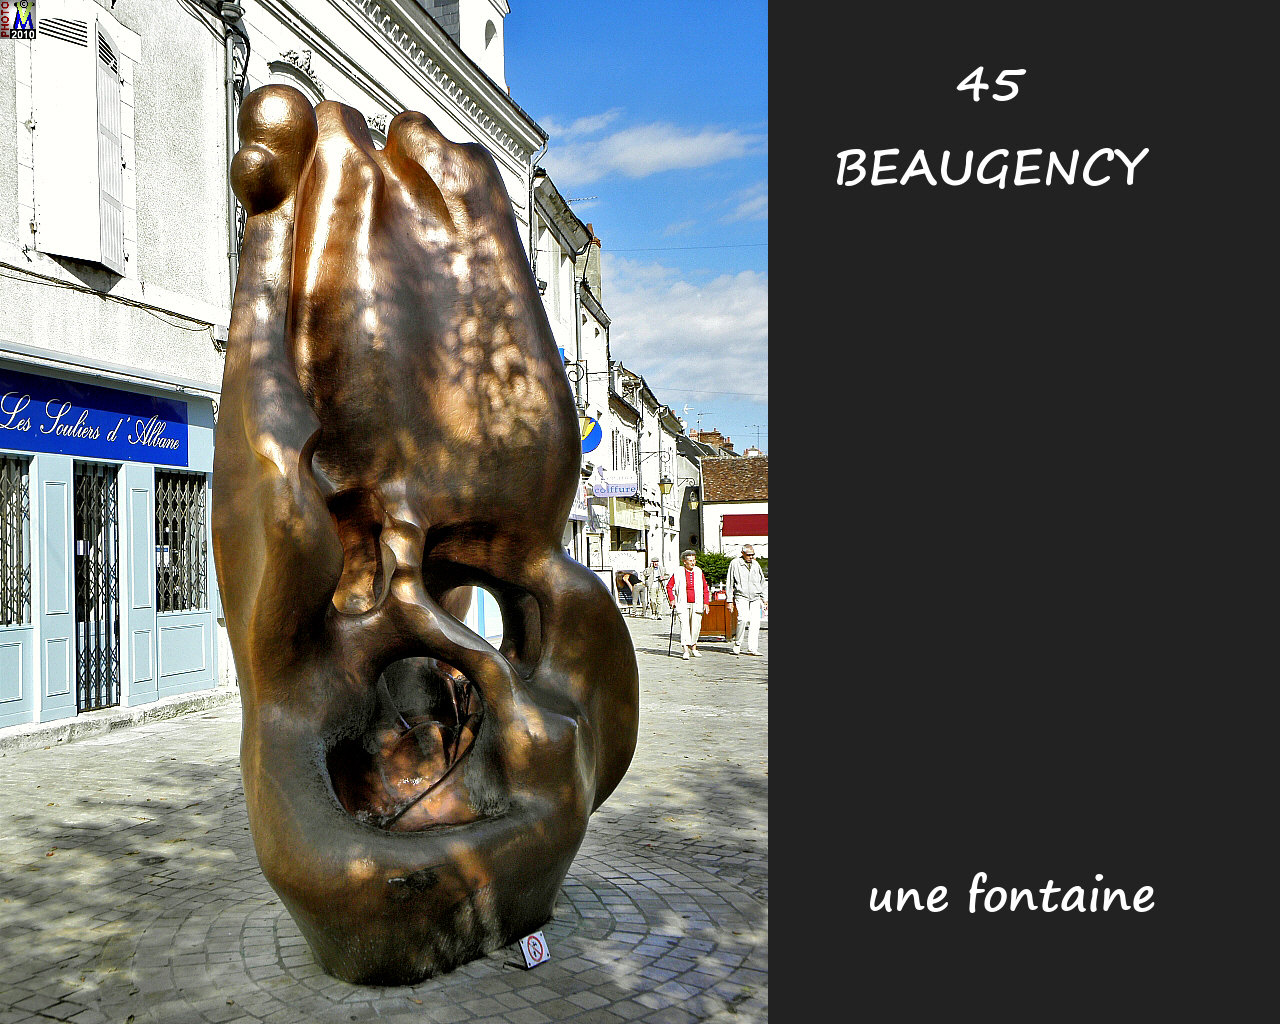 45BEAUGENCY_fontaine_102.jpg